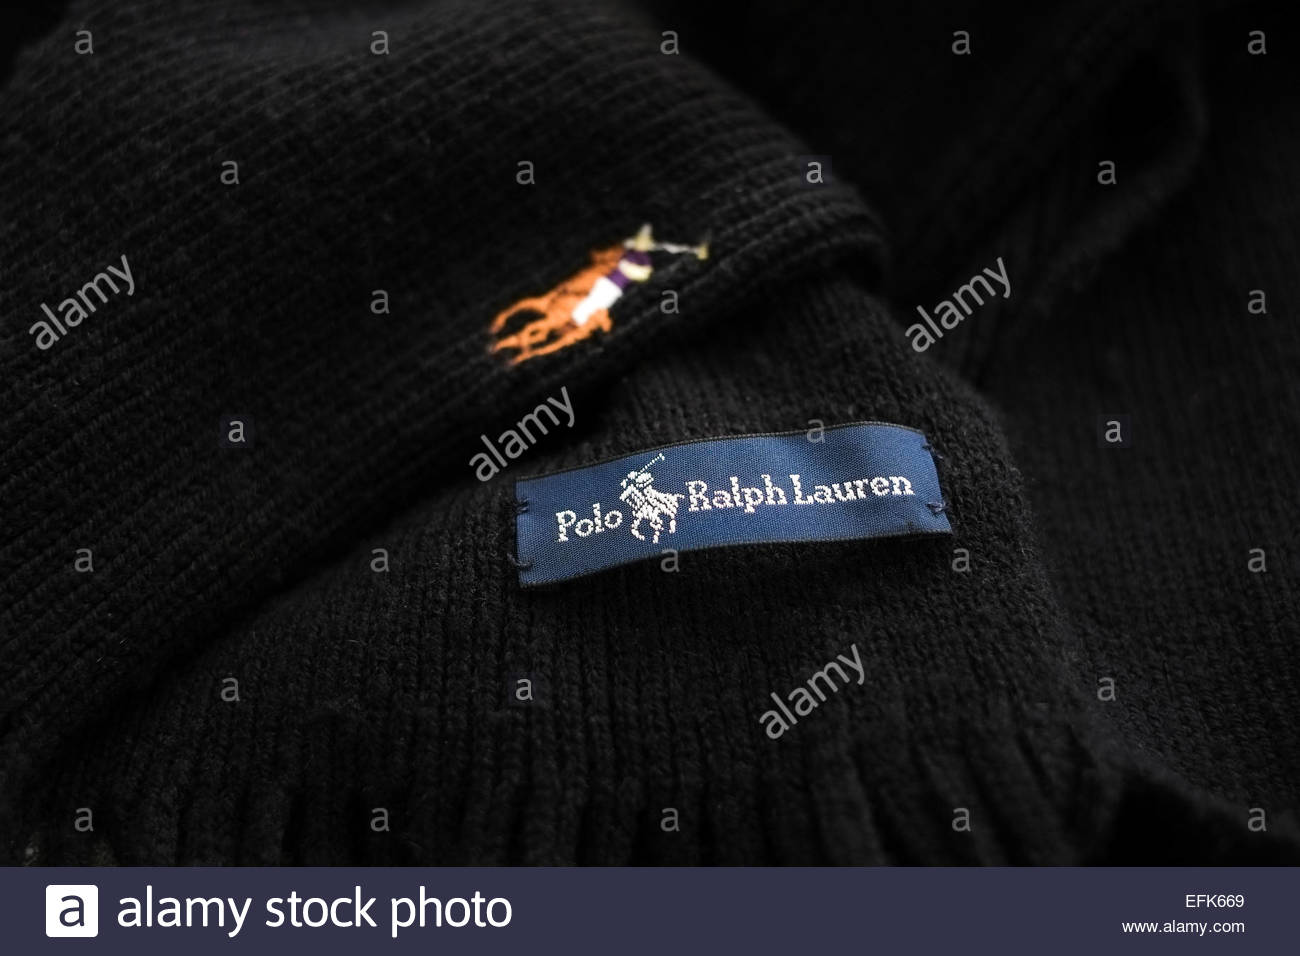 Ralph Lauren Polo logo icon - Stock Image